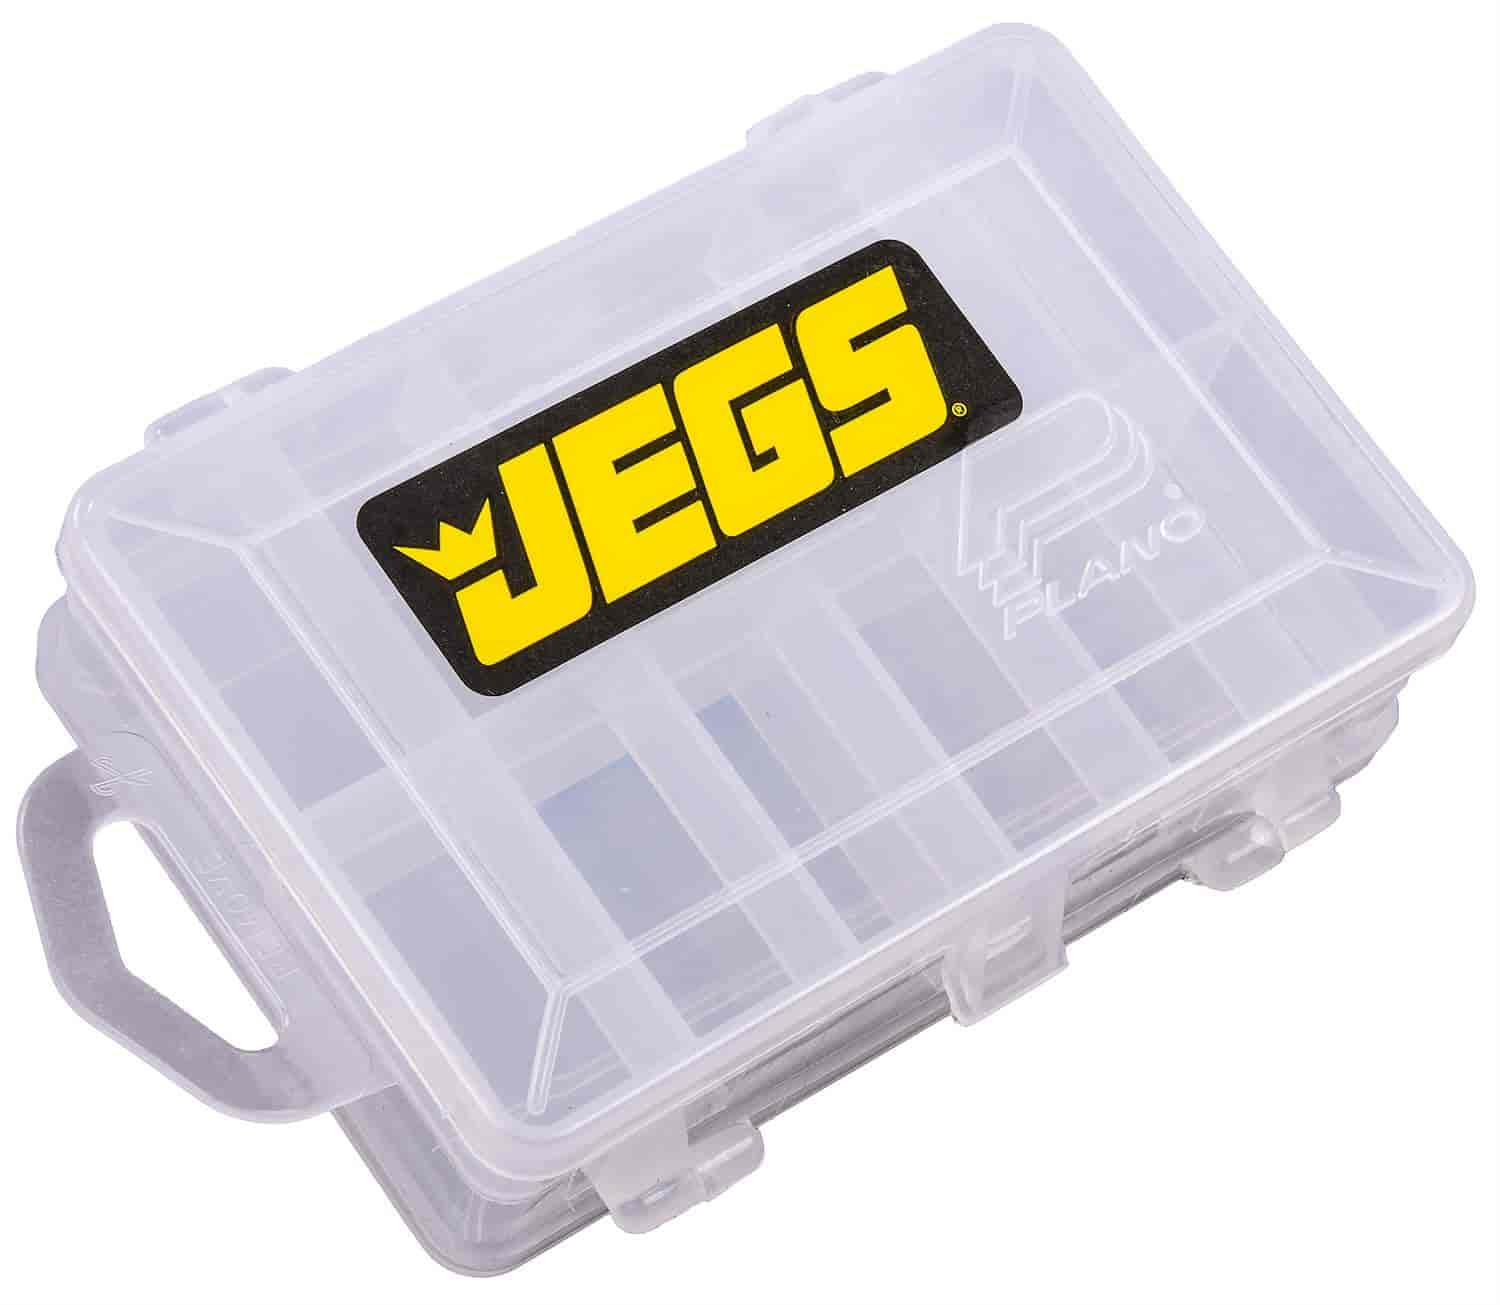 JEGS Performance Products 15020-1 - JEGS Holley� Jet Kit with Case